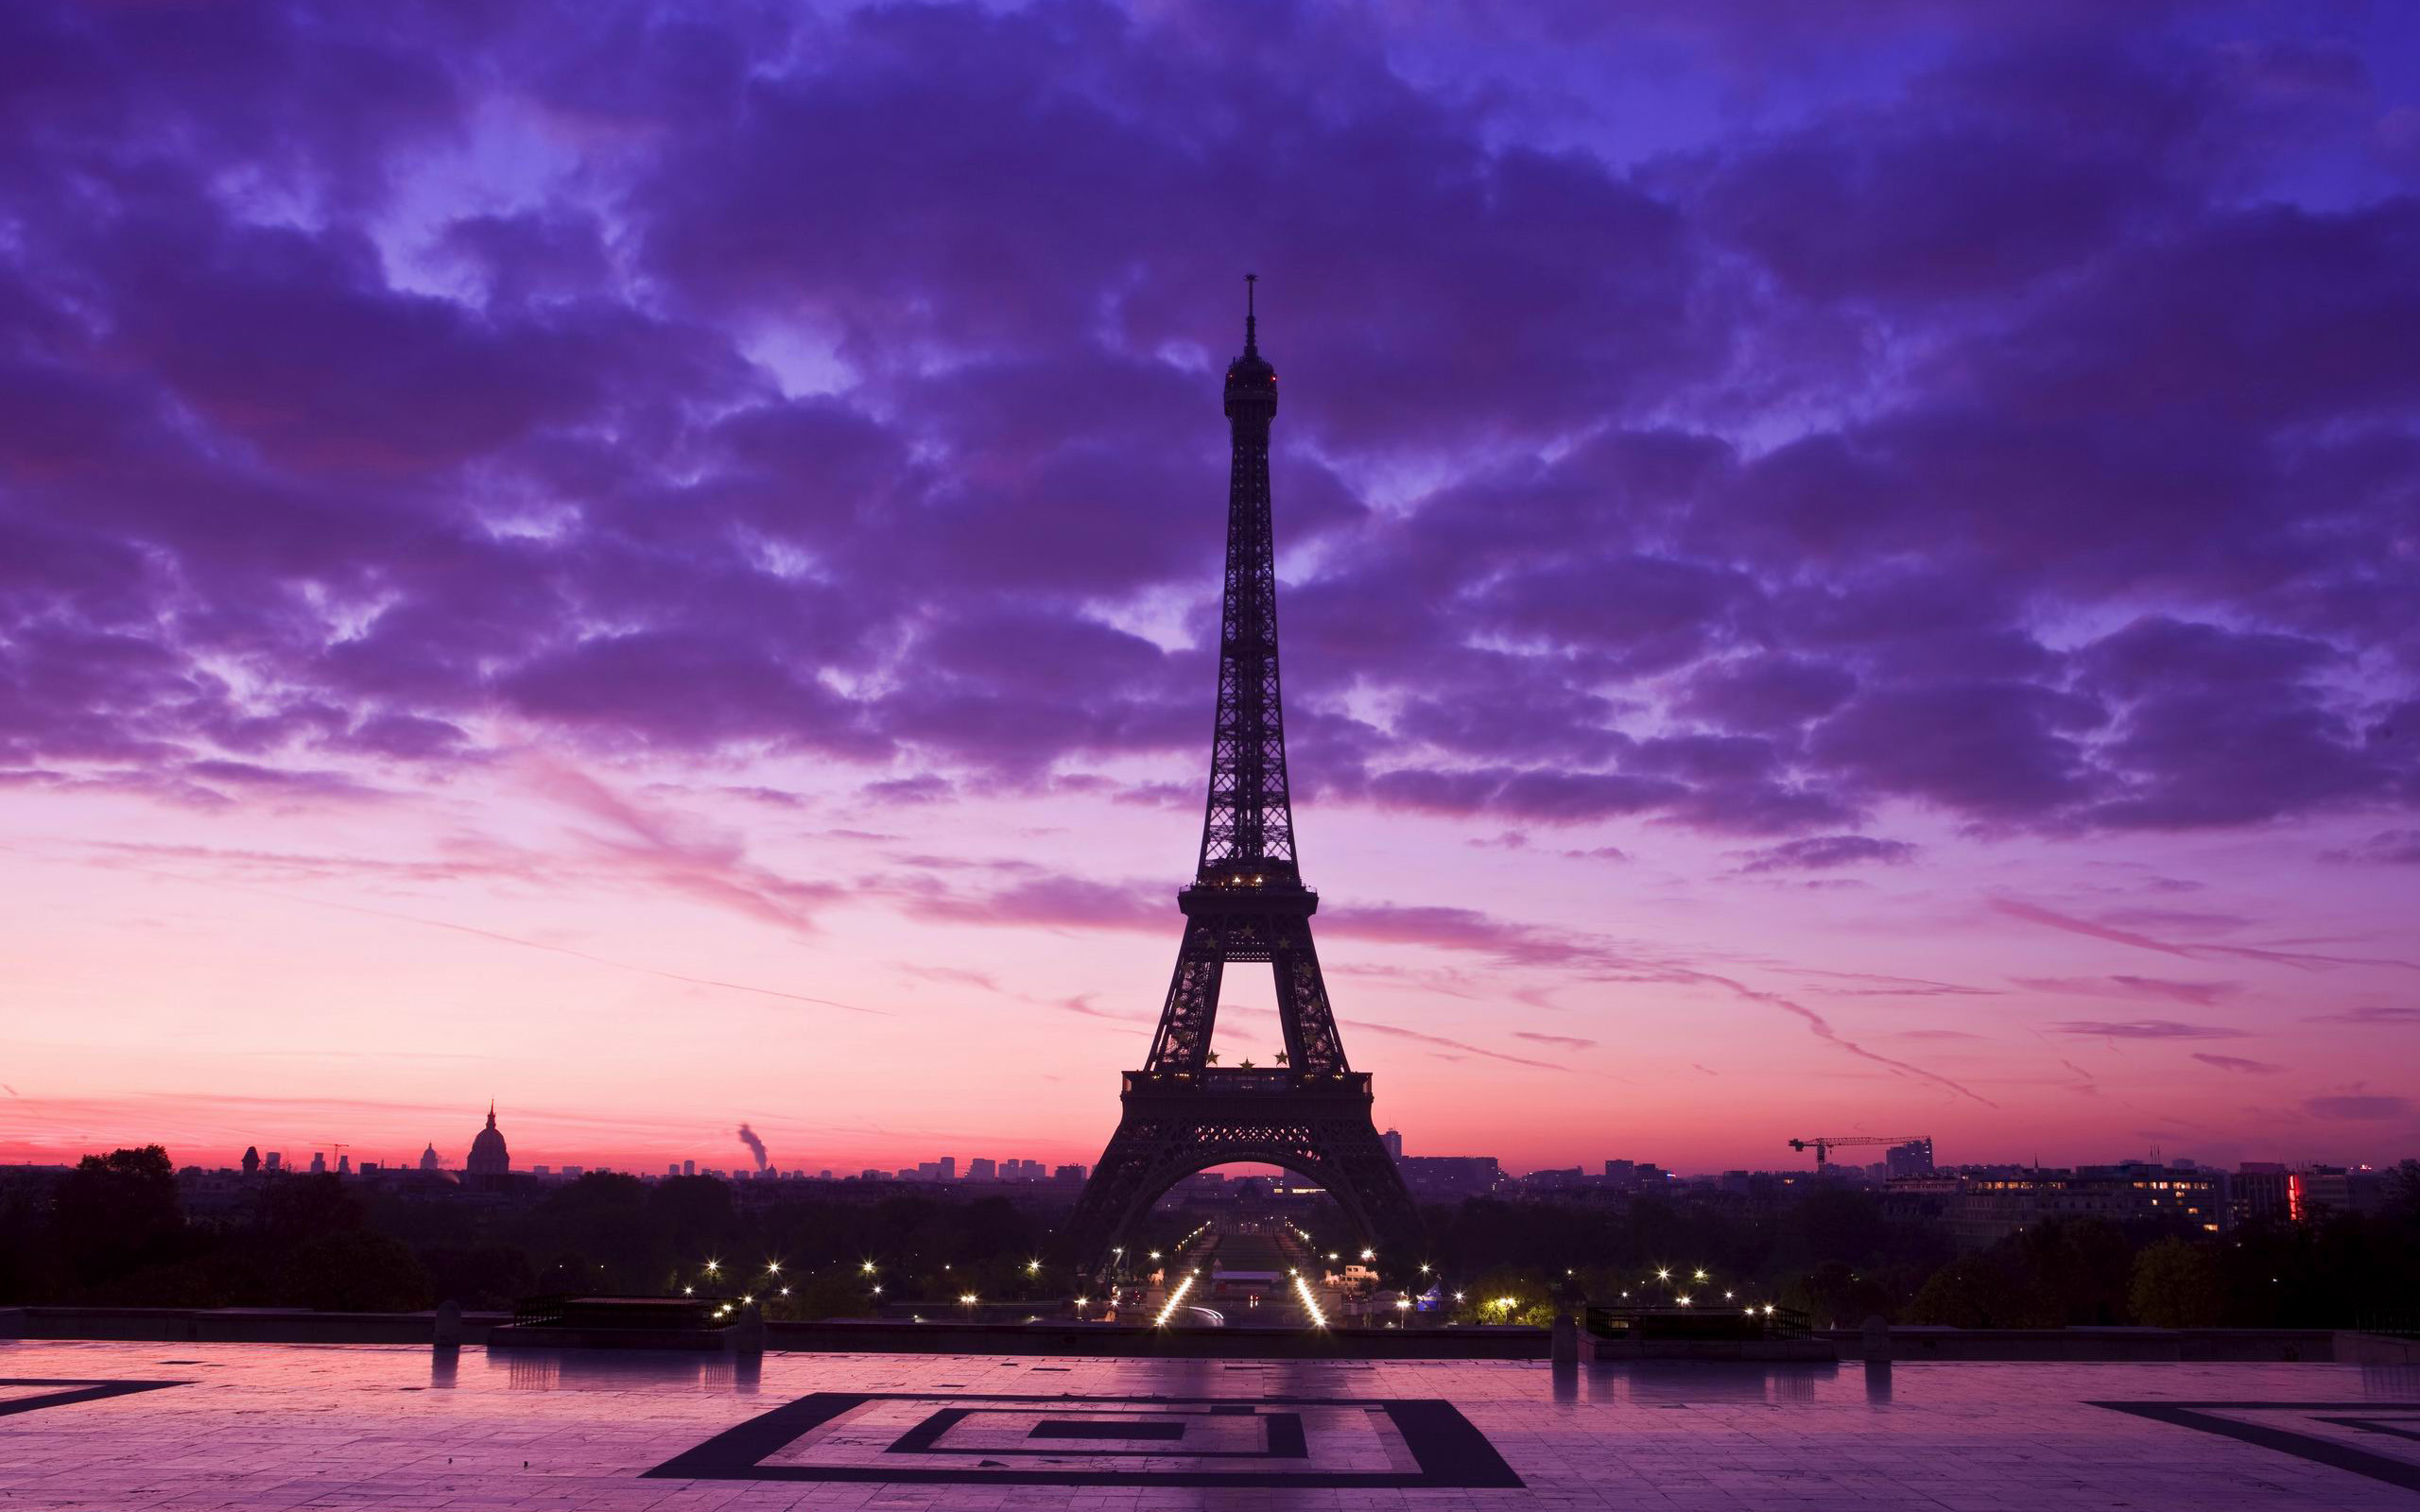 2560x1600 Holiday Beautiful Purple Sky In Above The Eiffel Tower Paris When Sunset  Moment HD Wallpaper Paris of Romantic Love City Wallpaper